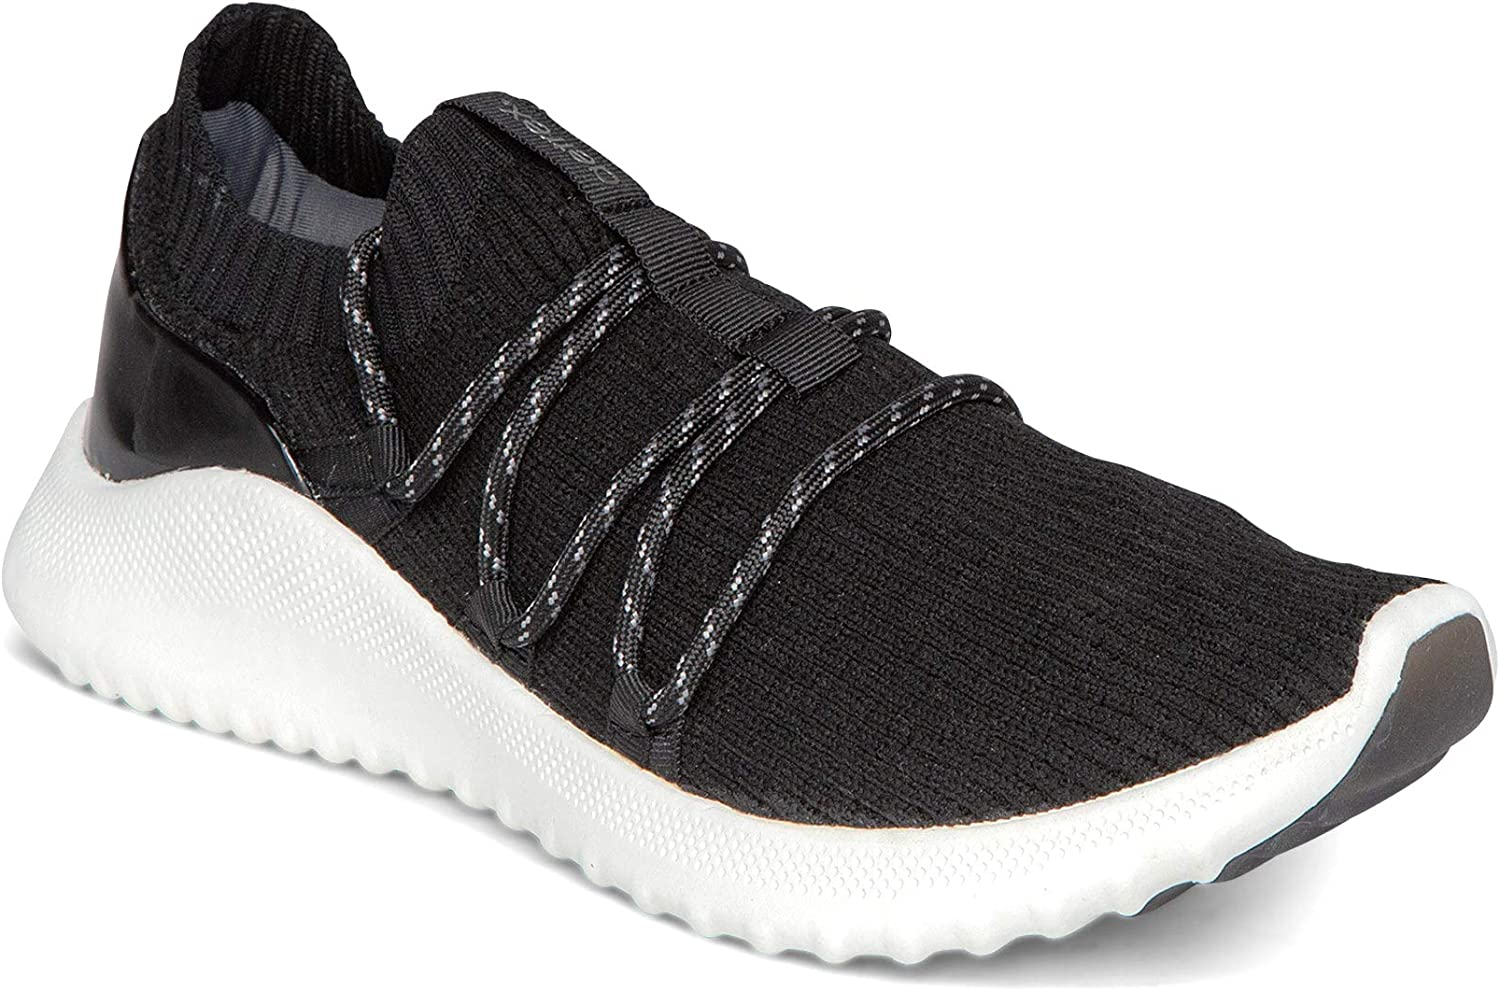 Aetrex Dani Arch Sneakers Support 70% OFF Outlet favorite